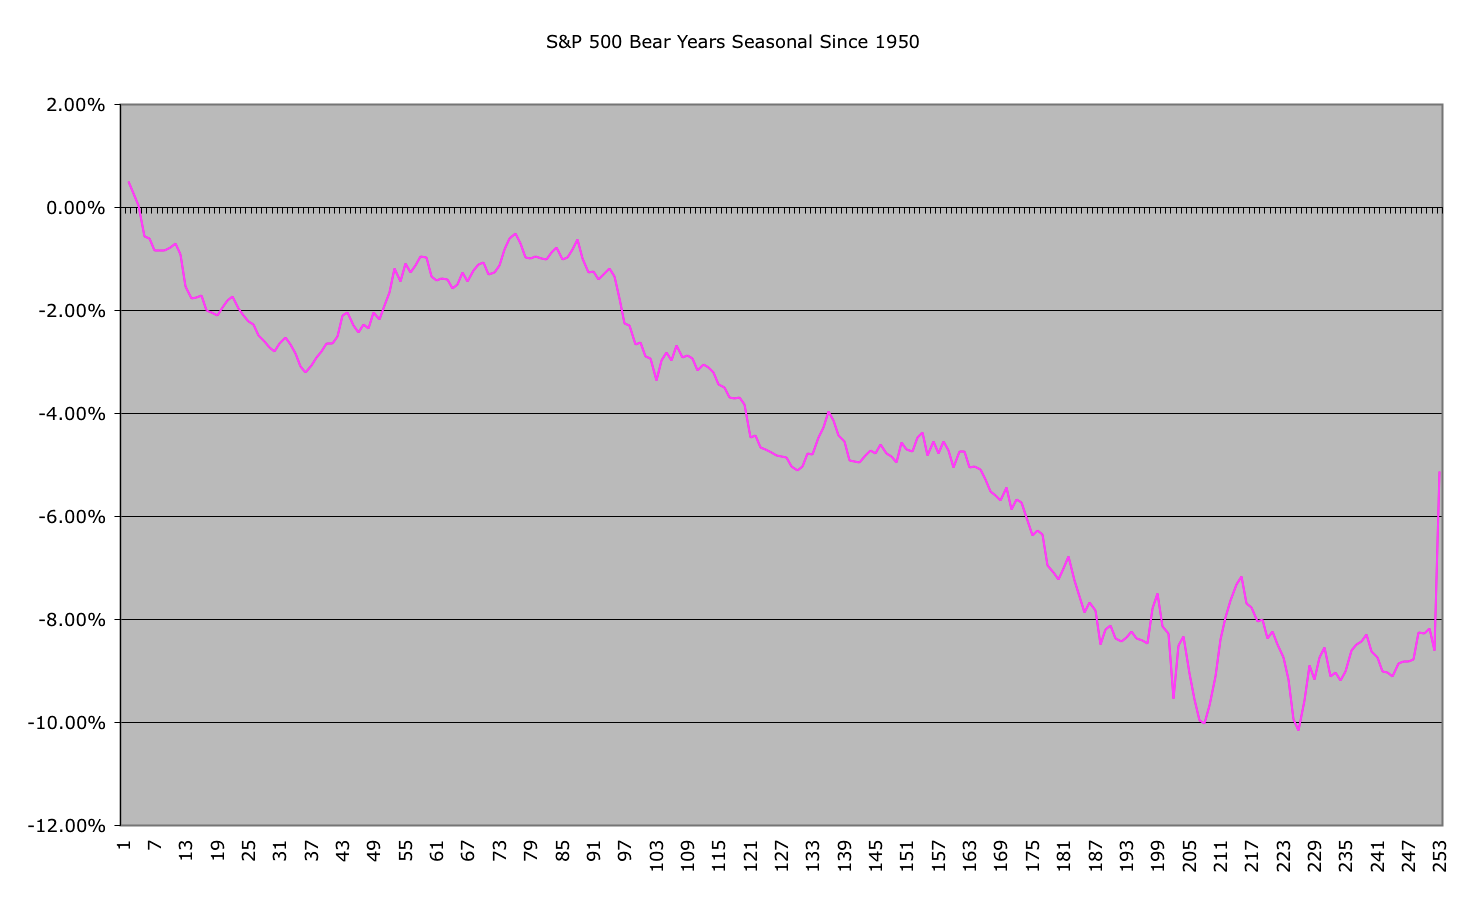 sp500-bearhistorical_22-10-10.png